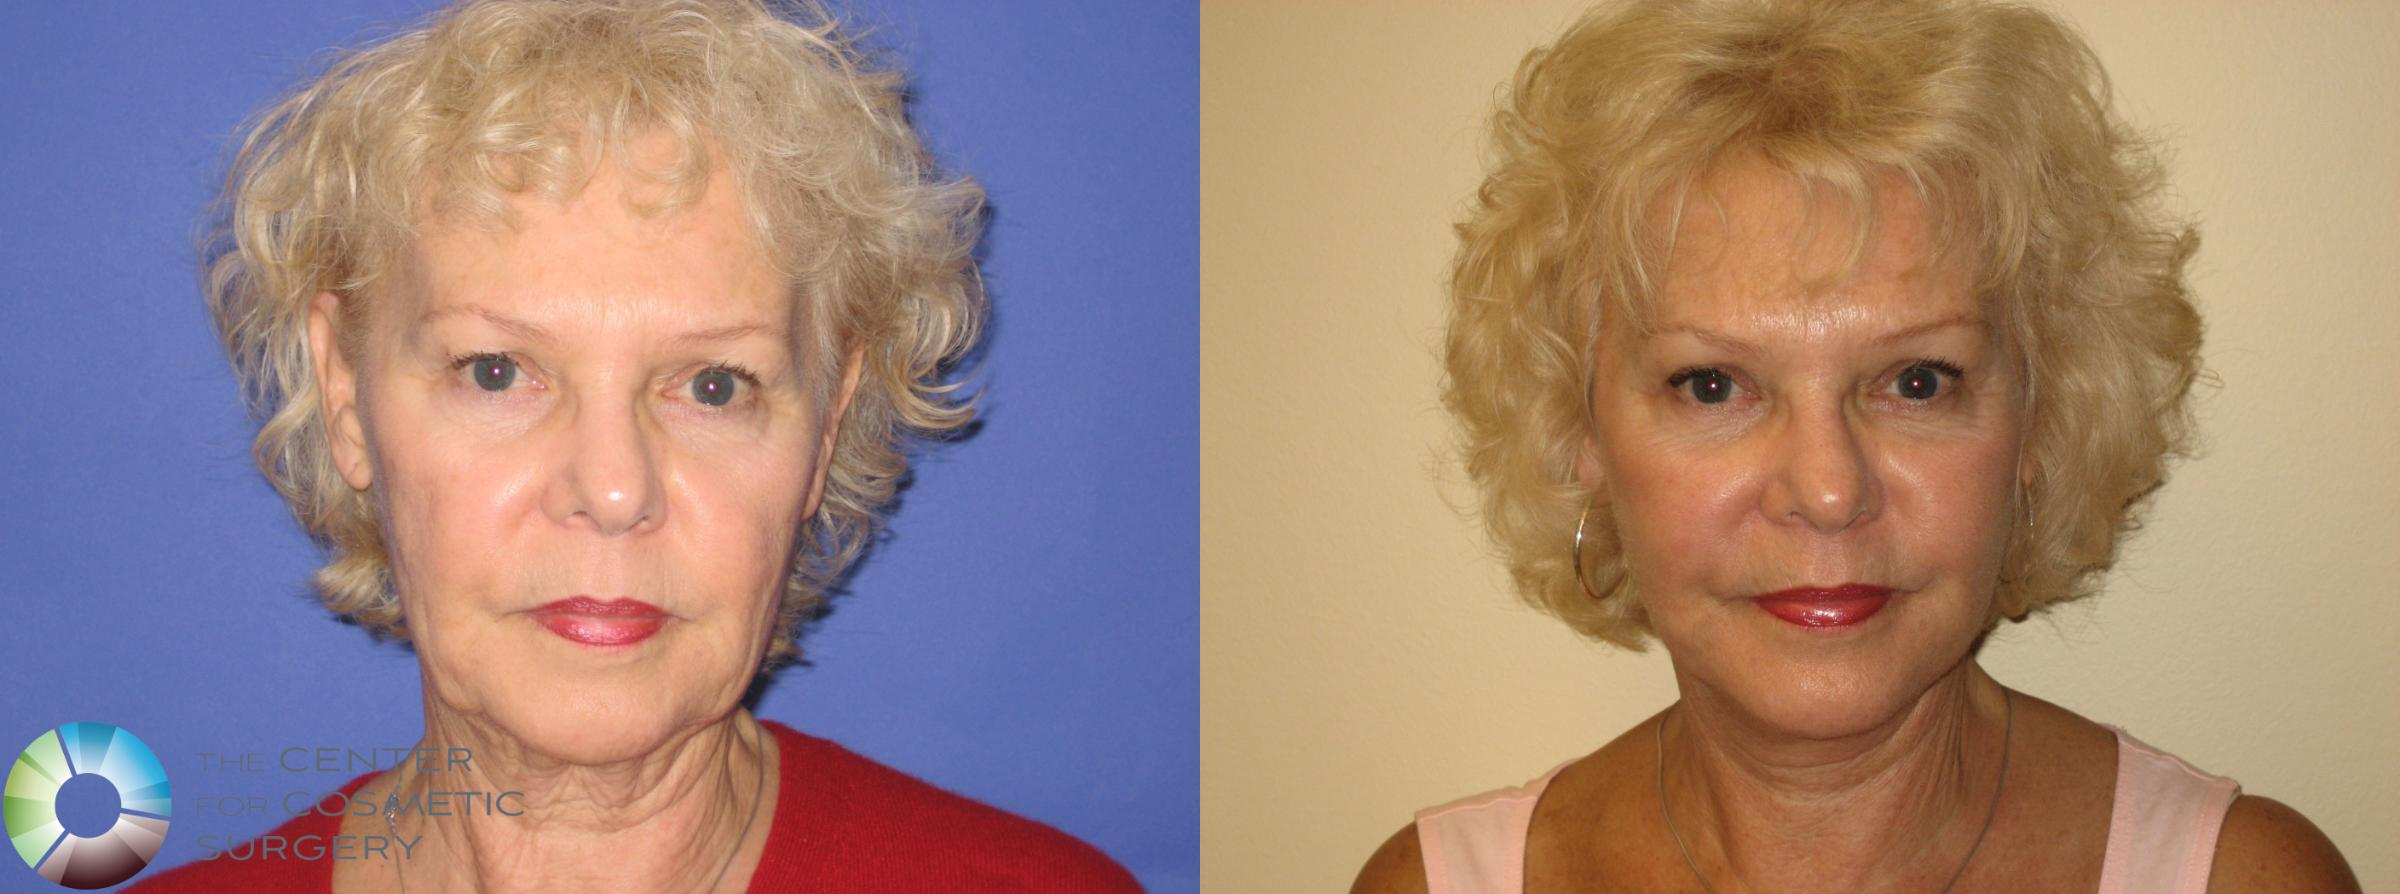 Mini Facelift Case 250 Before & After View #1 | Golden, CO | The Center for Cosmetic Surgery